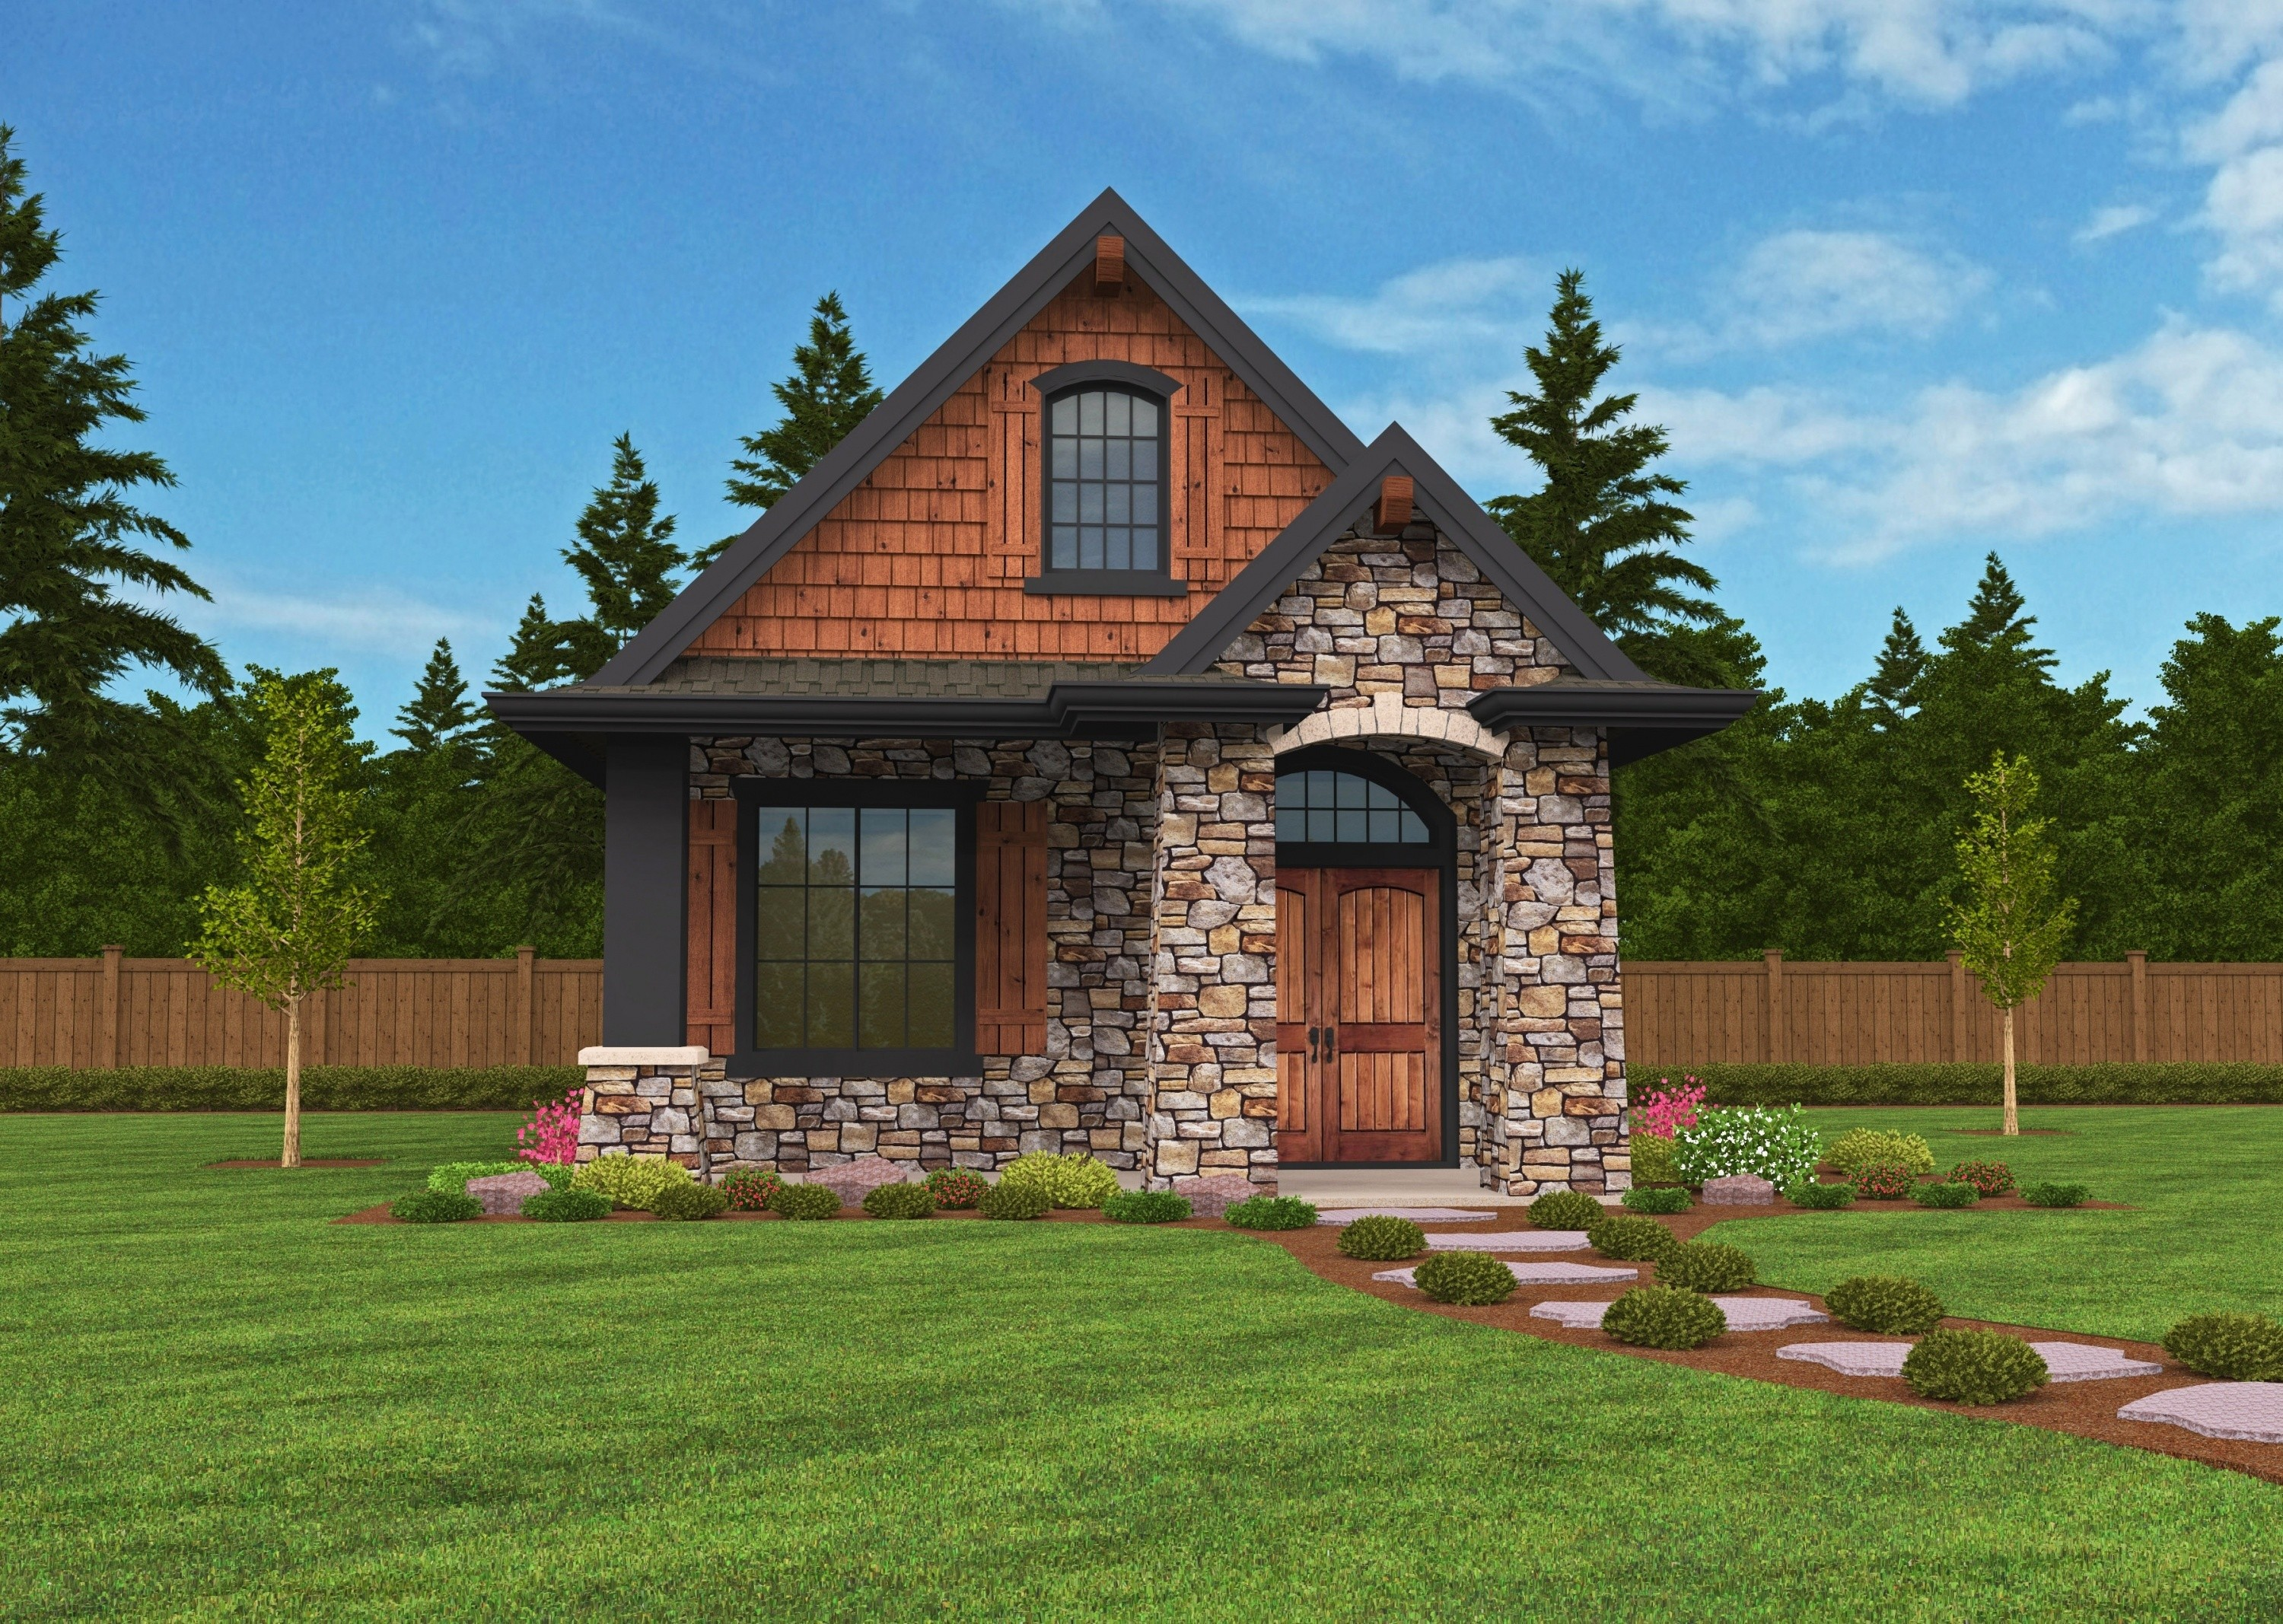 Montana House Plan | Small Lodge Home Design with European ...